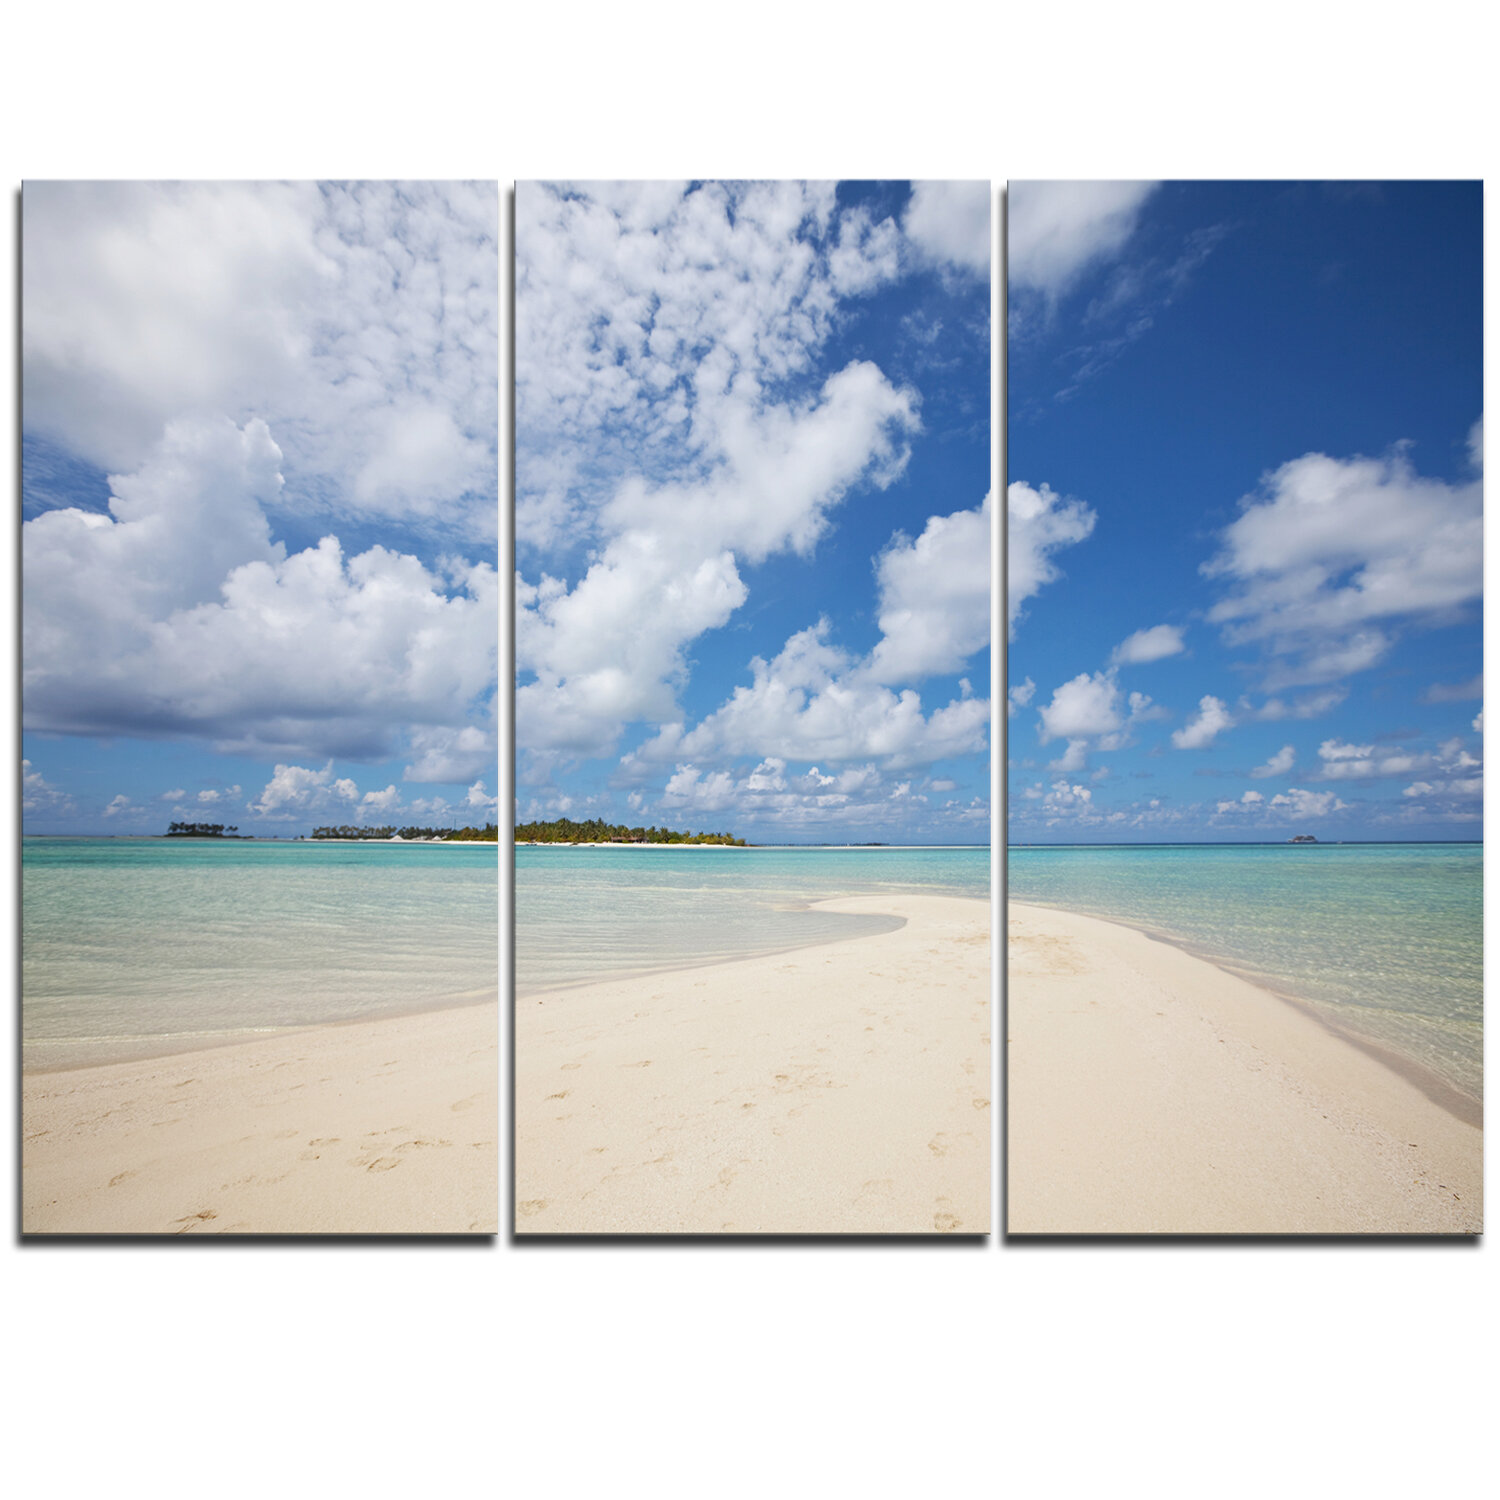 Discount Serene Maldives Beach Under Clouds 3 Piece Graphic Art On Wrapped Canvas Set Furniture Online